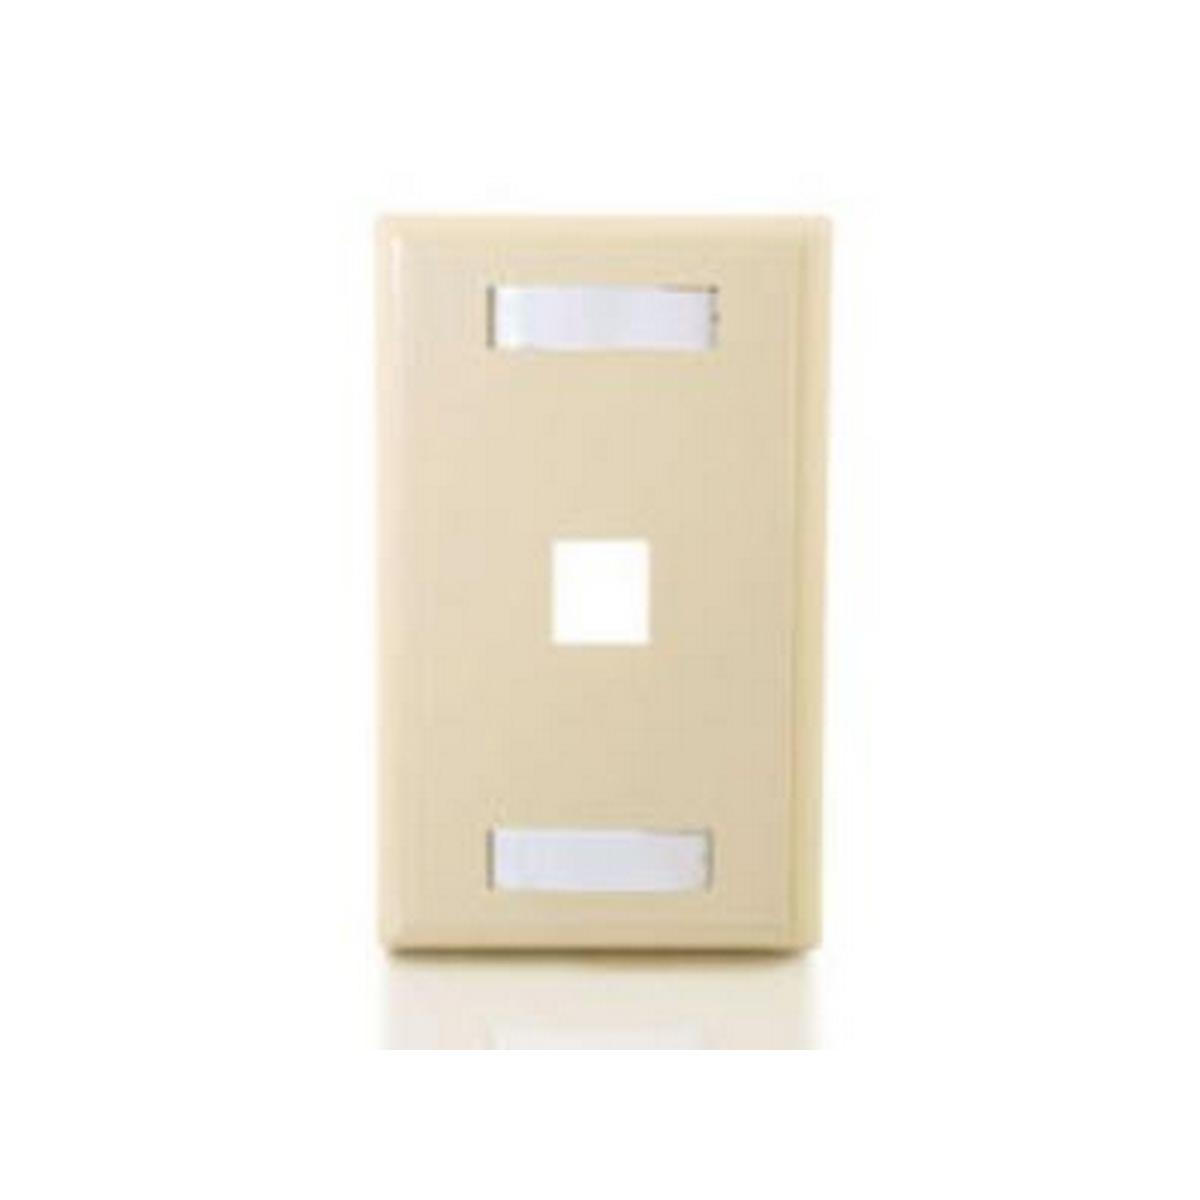 1 Port keystone 1 gang Wall plate Ivory